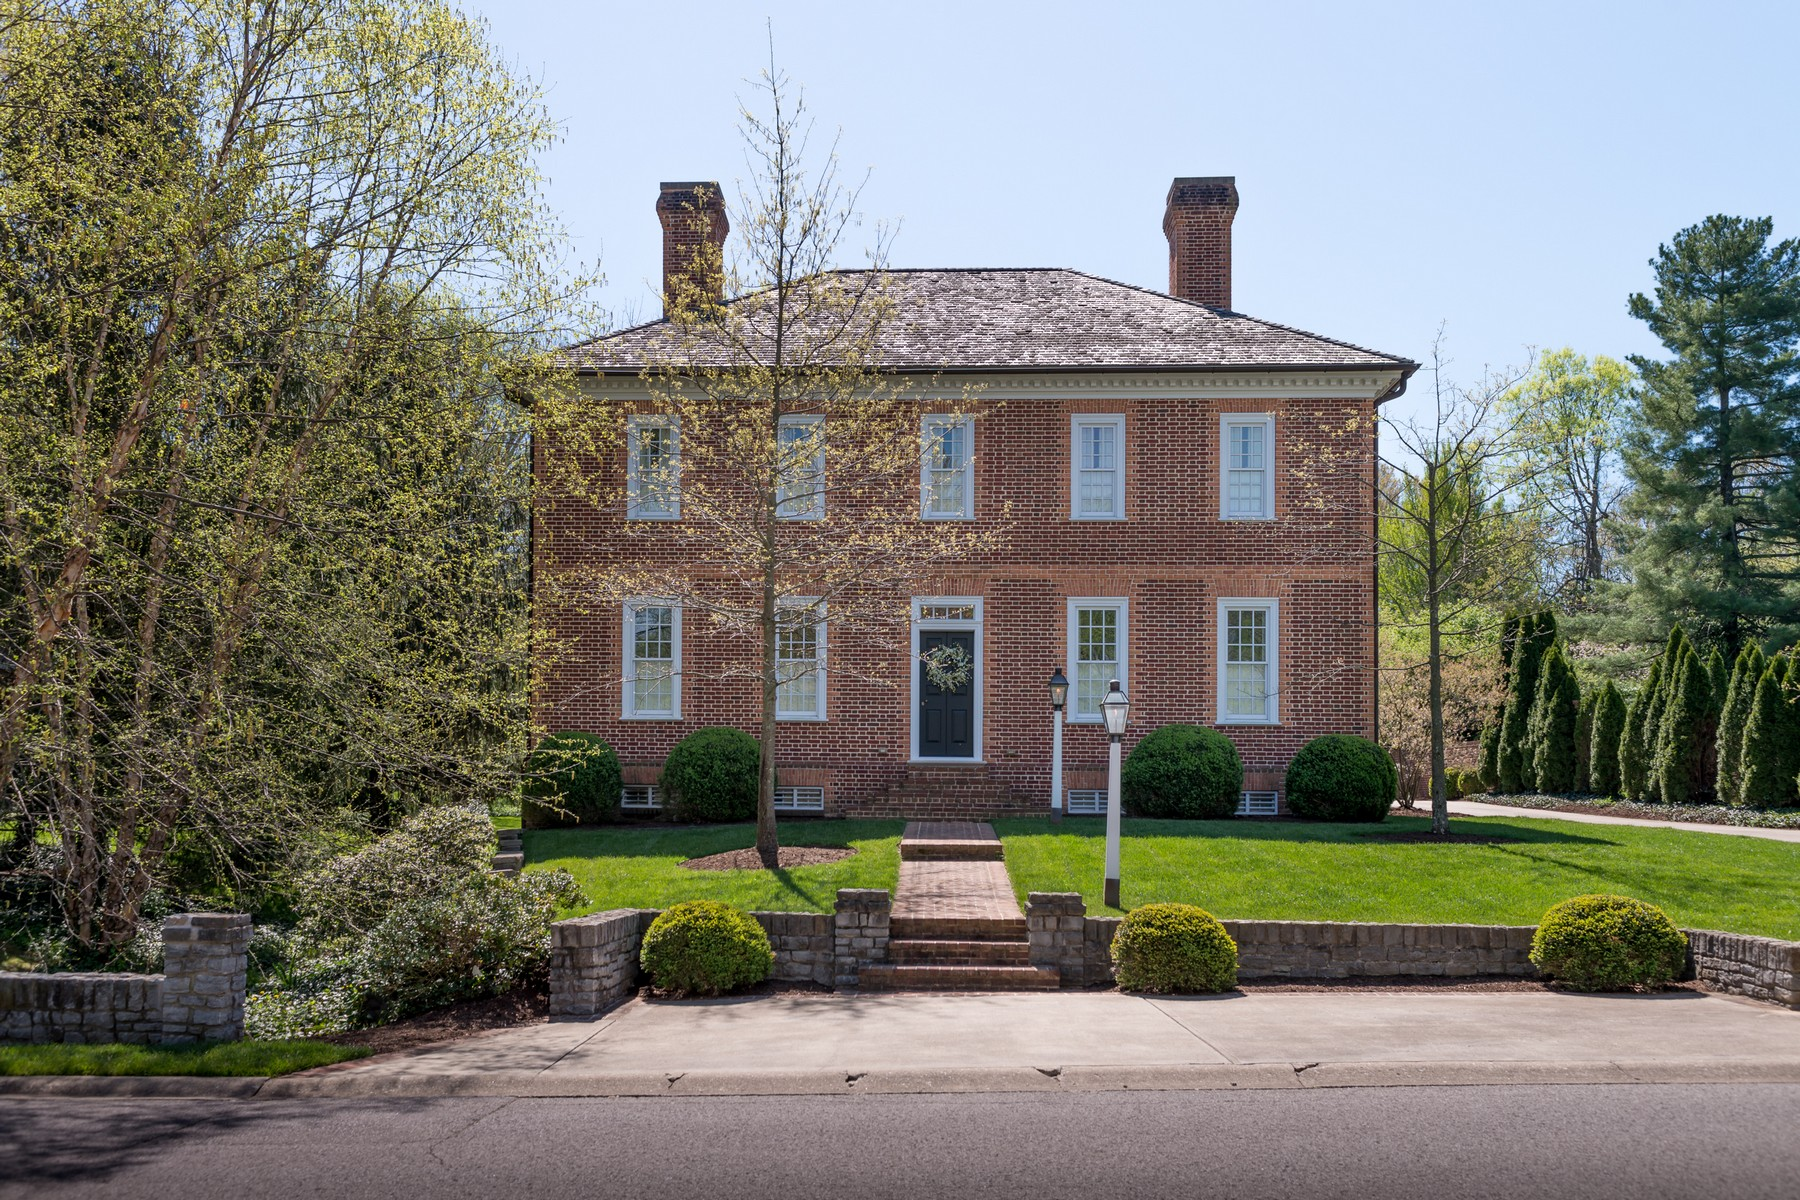 Casa Unifamiliar por un Venta en 1784 Eastwood 1784 Eastwood Dr Bluegrass, Lexington, Kentucky, 40502 Estados Unidos